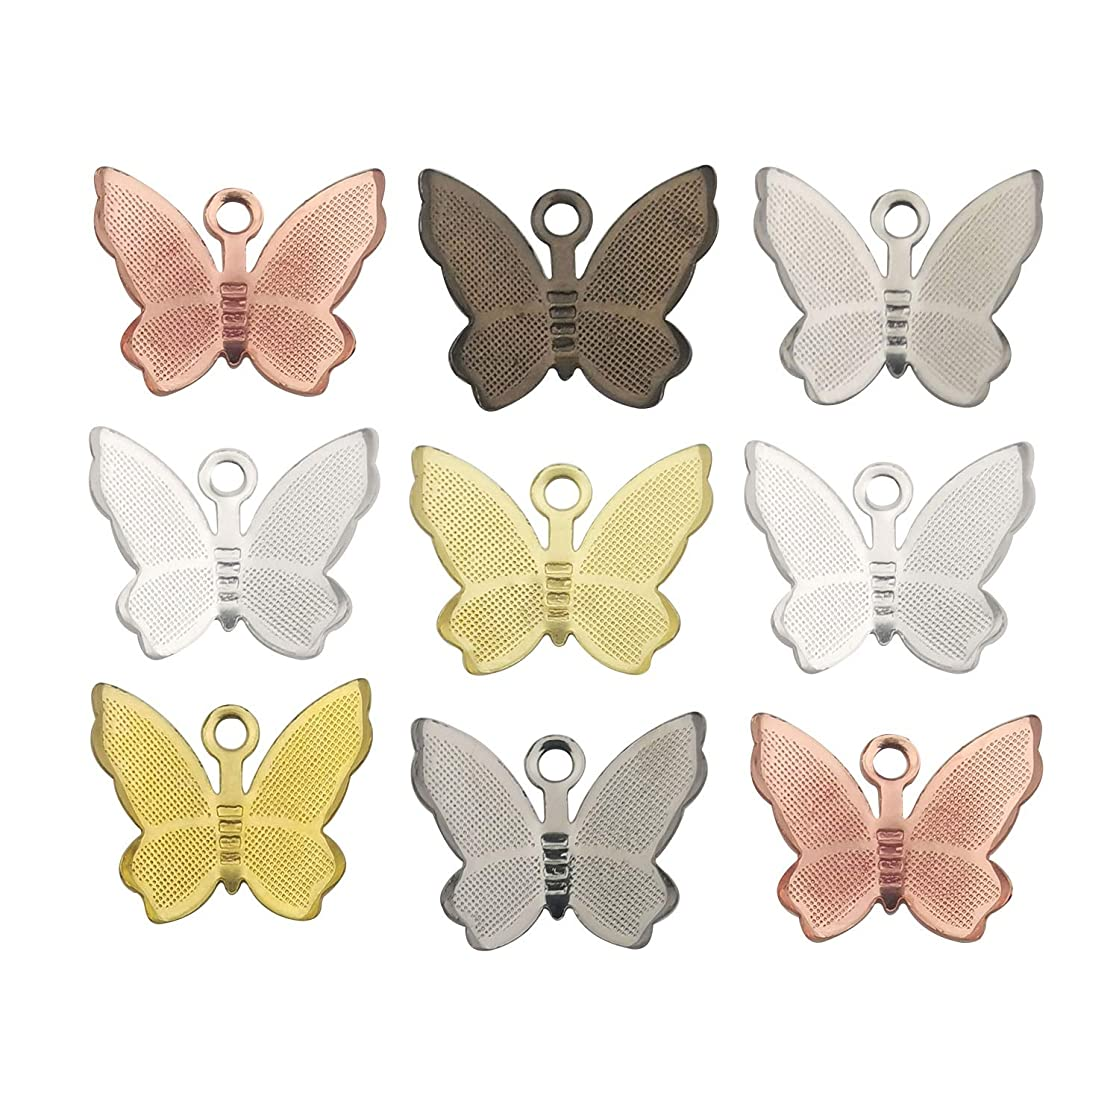 iloveDIYbeads 100Pcs Craft Supplies Brass Mini Mixed Butterfly Pendants Charms for Jewelry Making Crafting Findings Accessory for DIY Necklace Bracelet M256